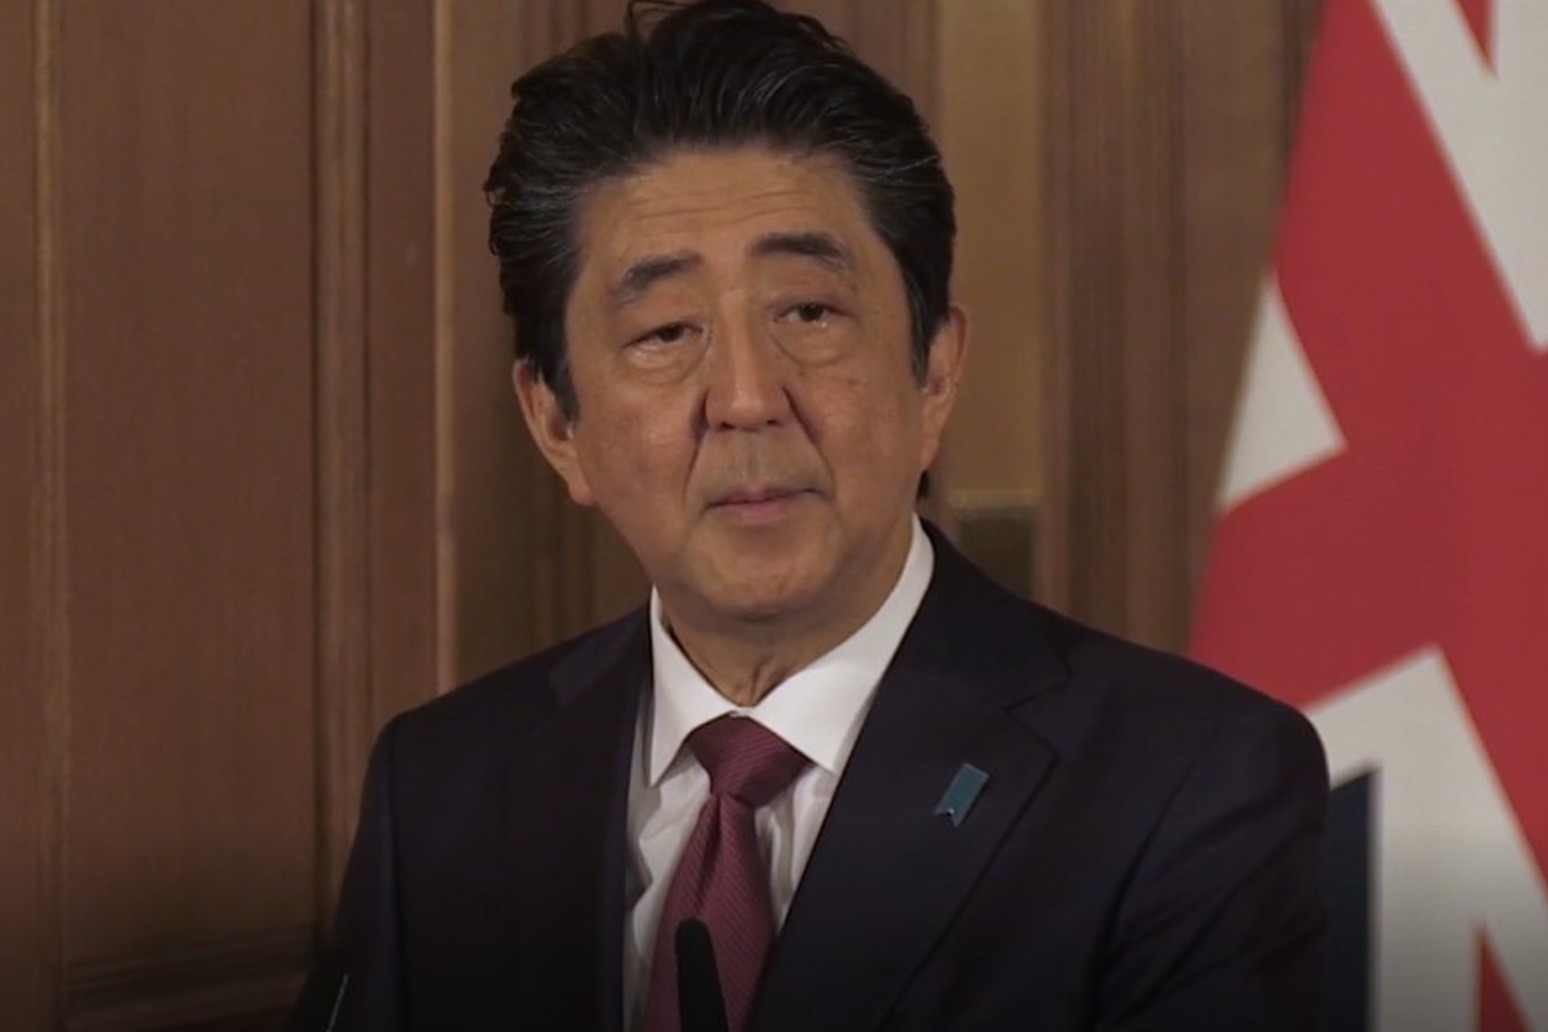 Japanese PM Shinzo Abe to resign amid health concerns – official